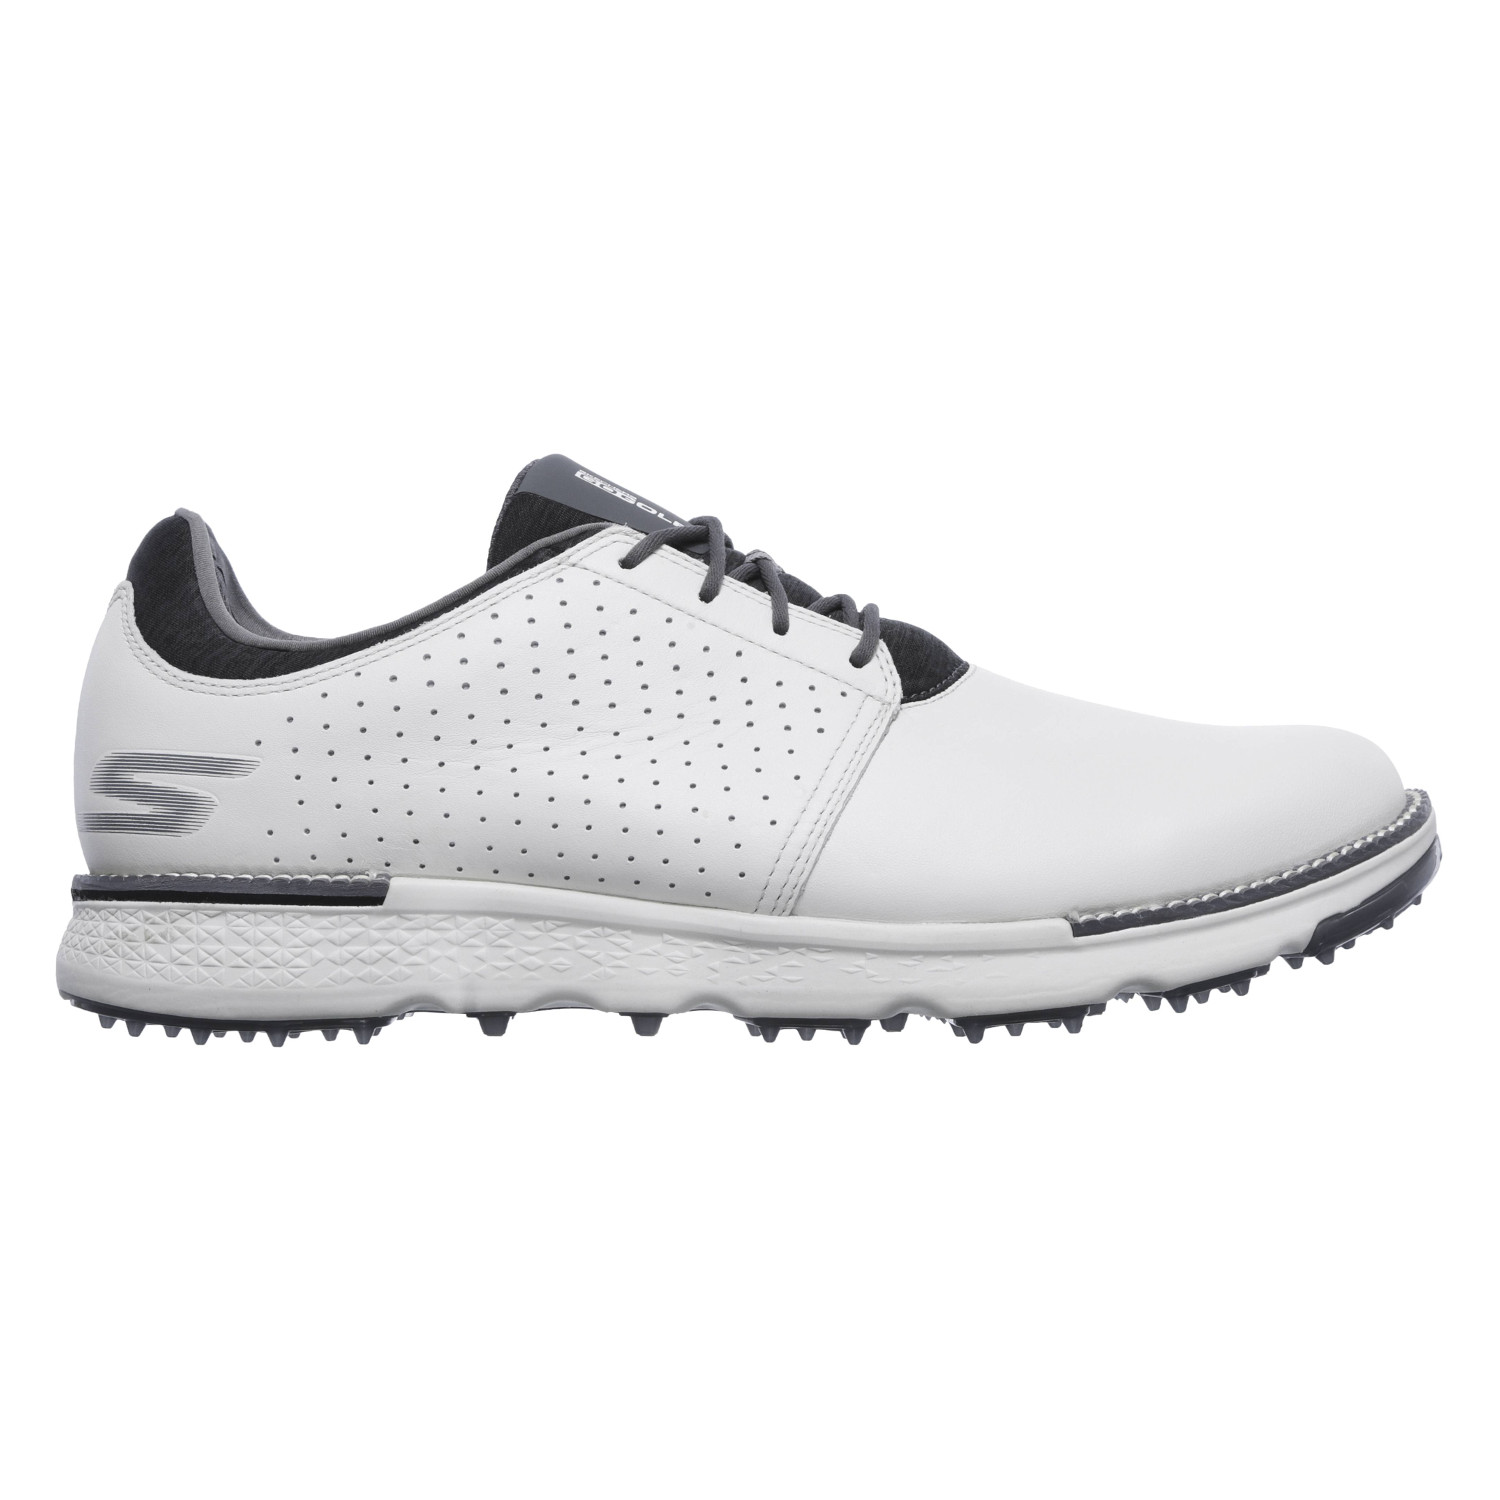 Skechers White Golf Shoes